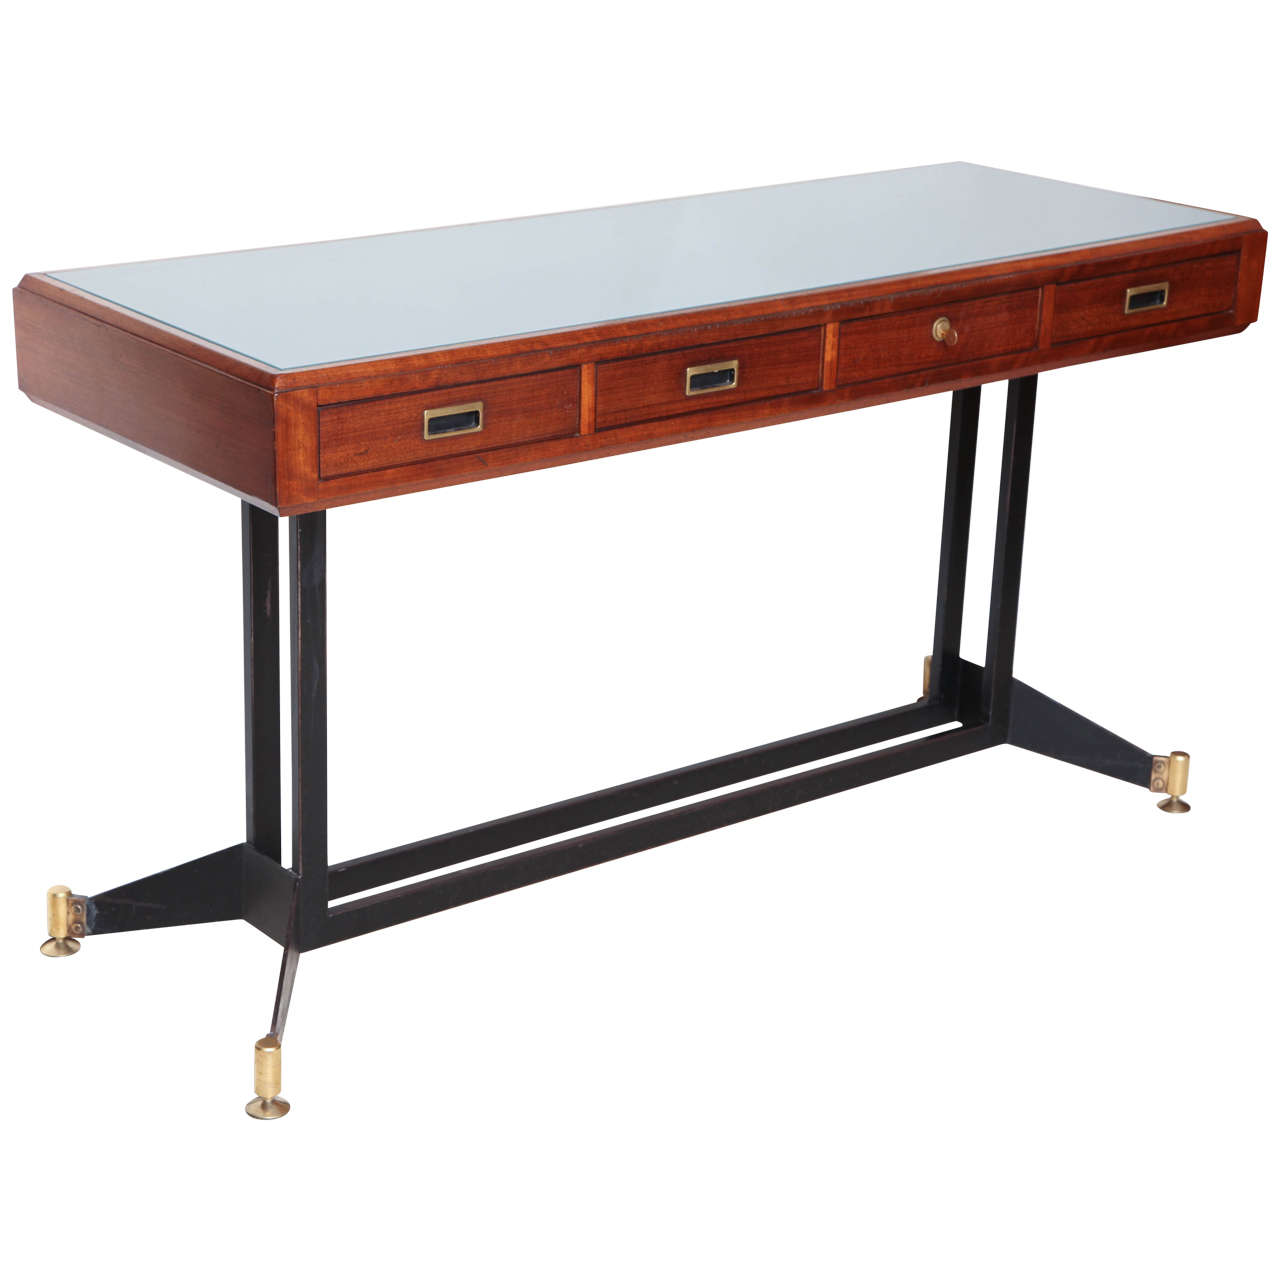 Italian mid century modern walnut console table with frosted glass top at 1stdibs Frosted glass furniture